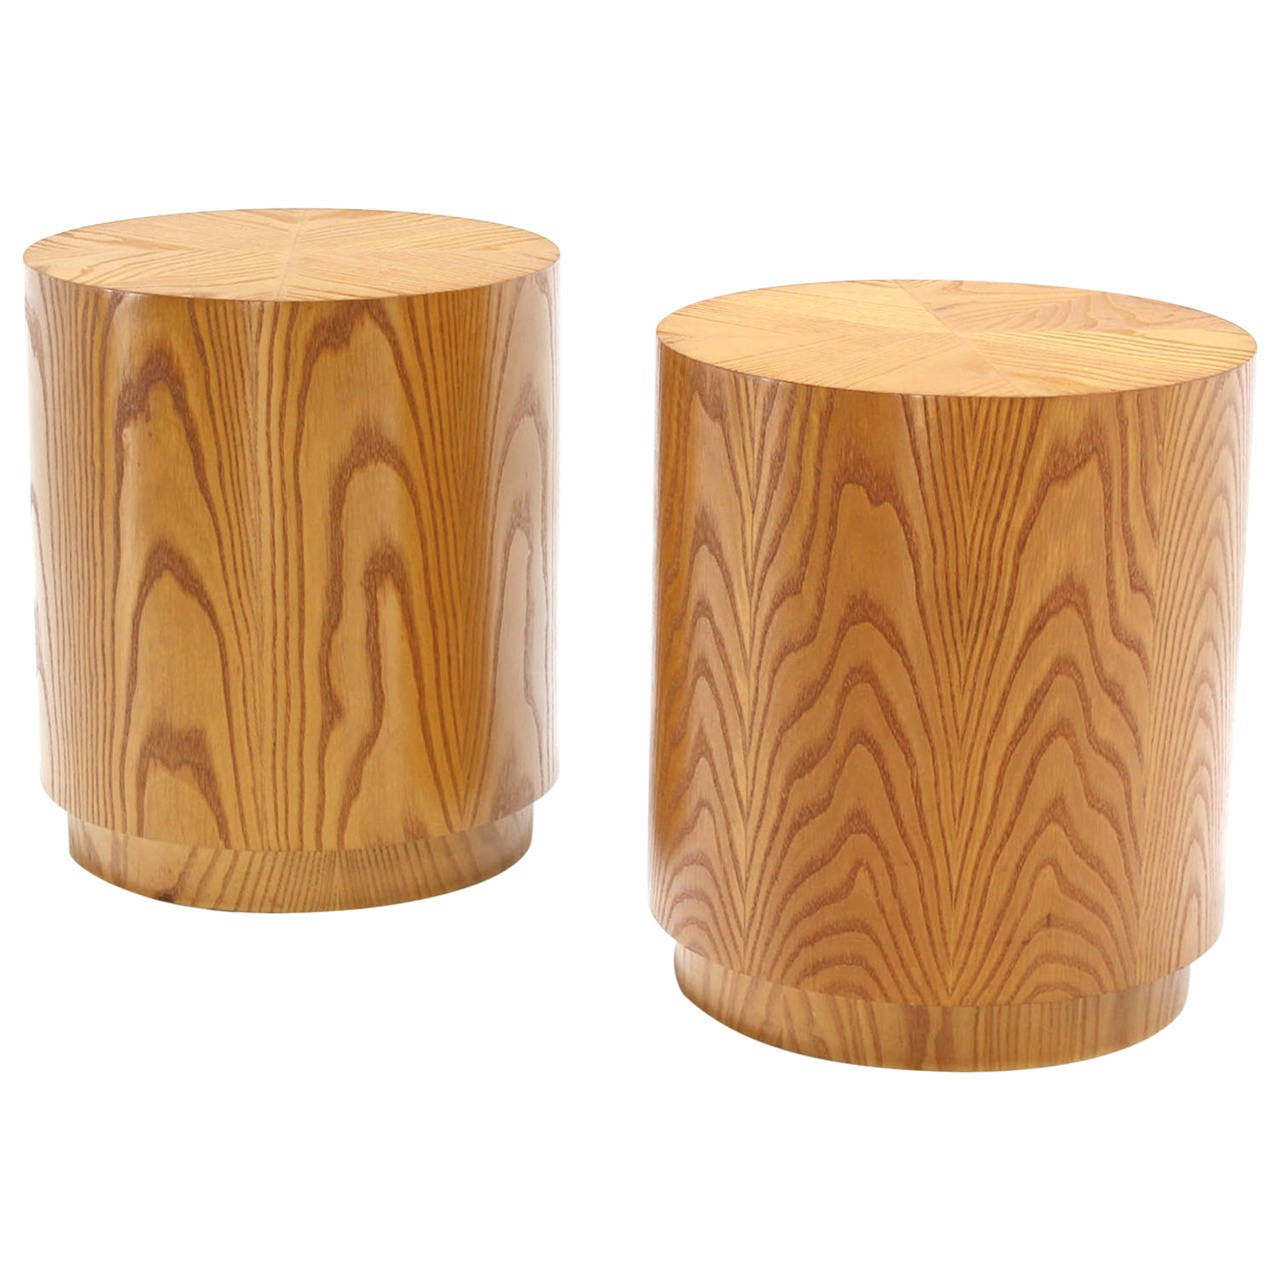 Pair of drum shape side tables at 1stdibs for Drum side table